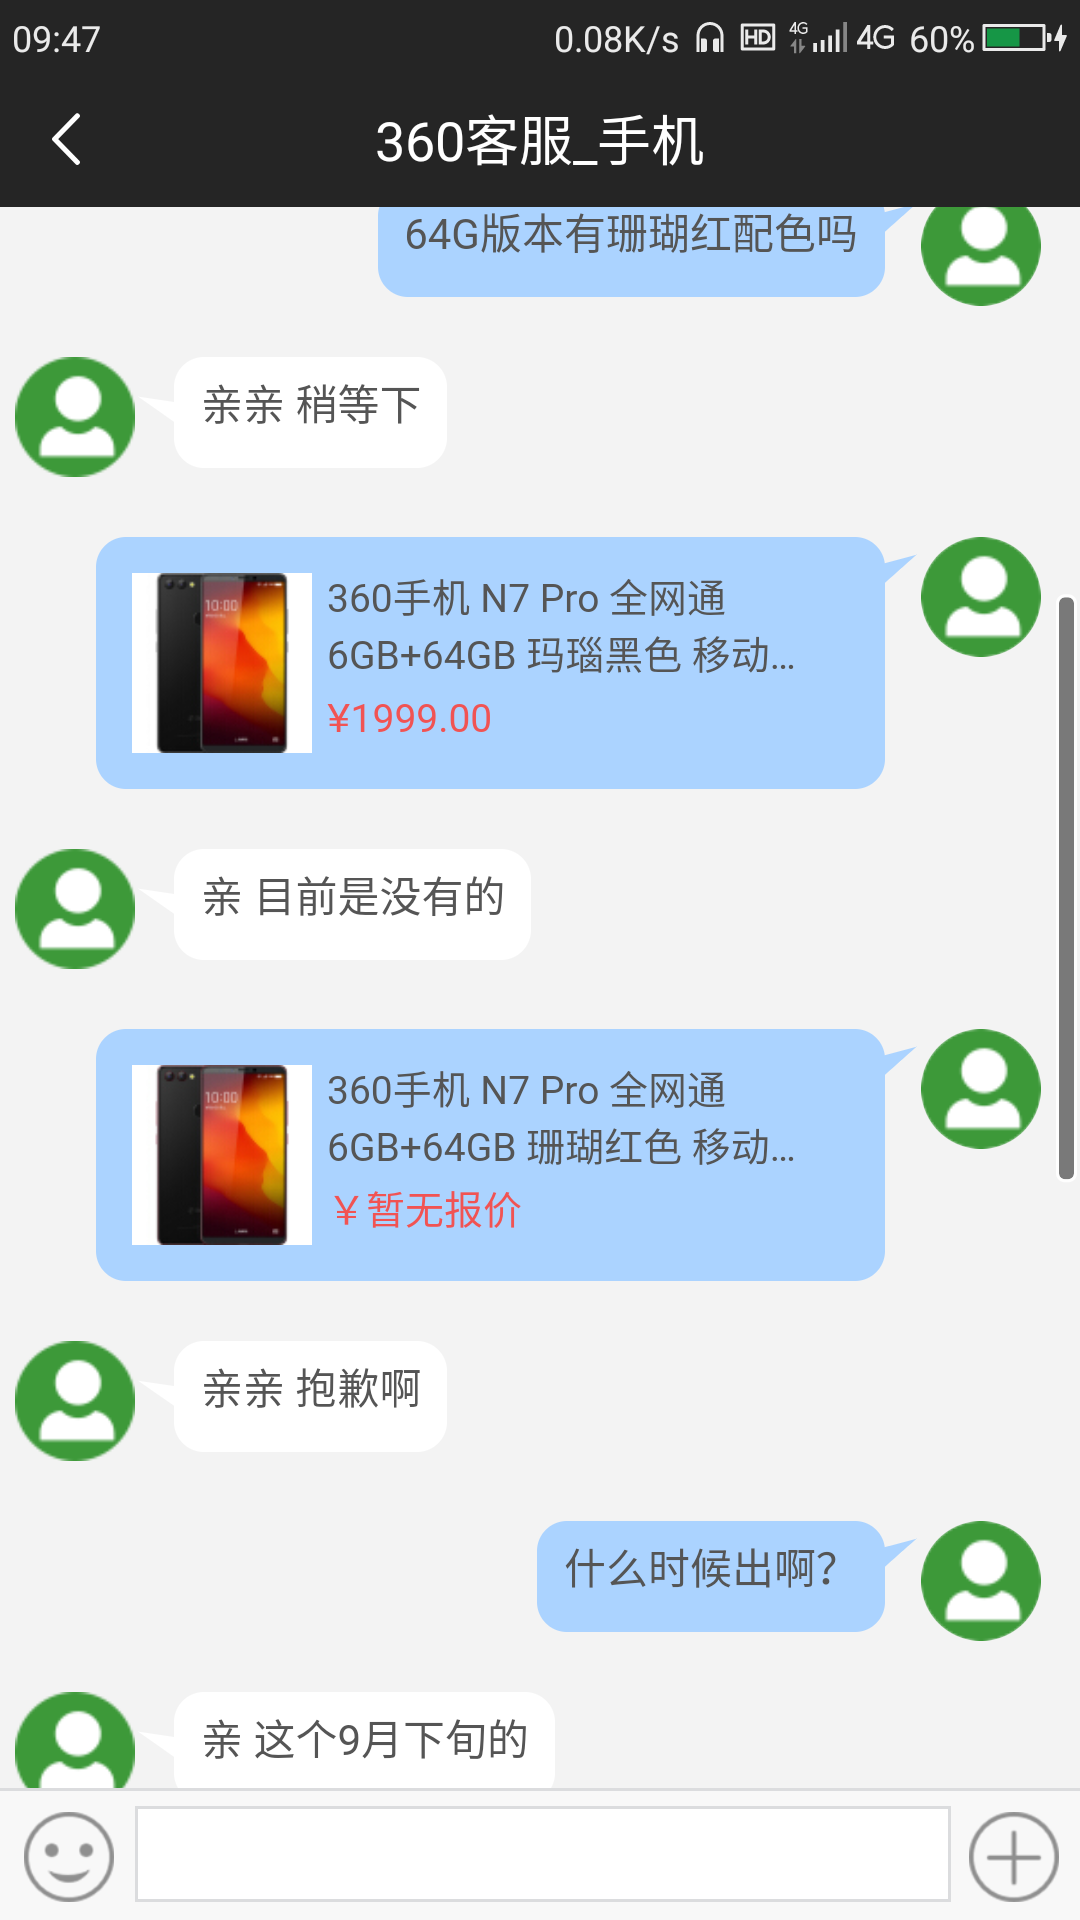 Screenshot_2018-08-23-09-47-23.png